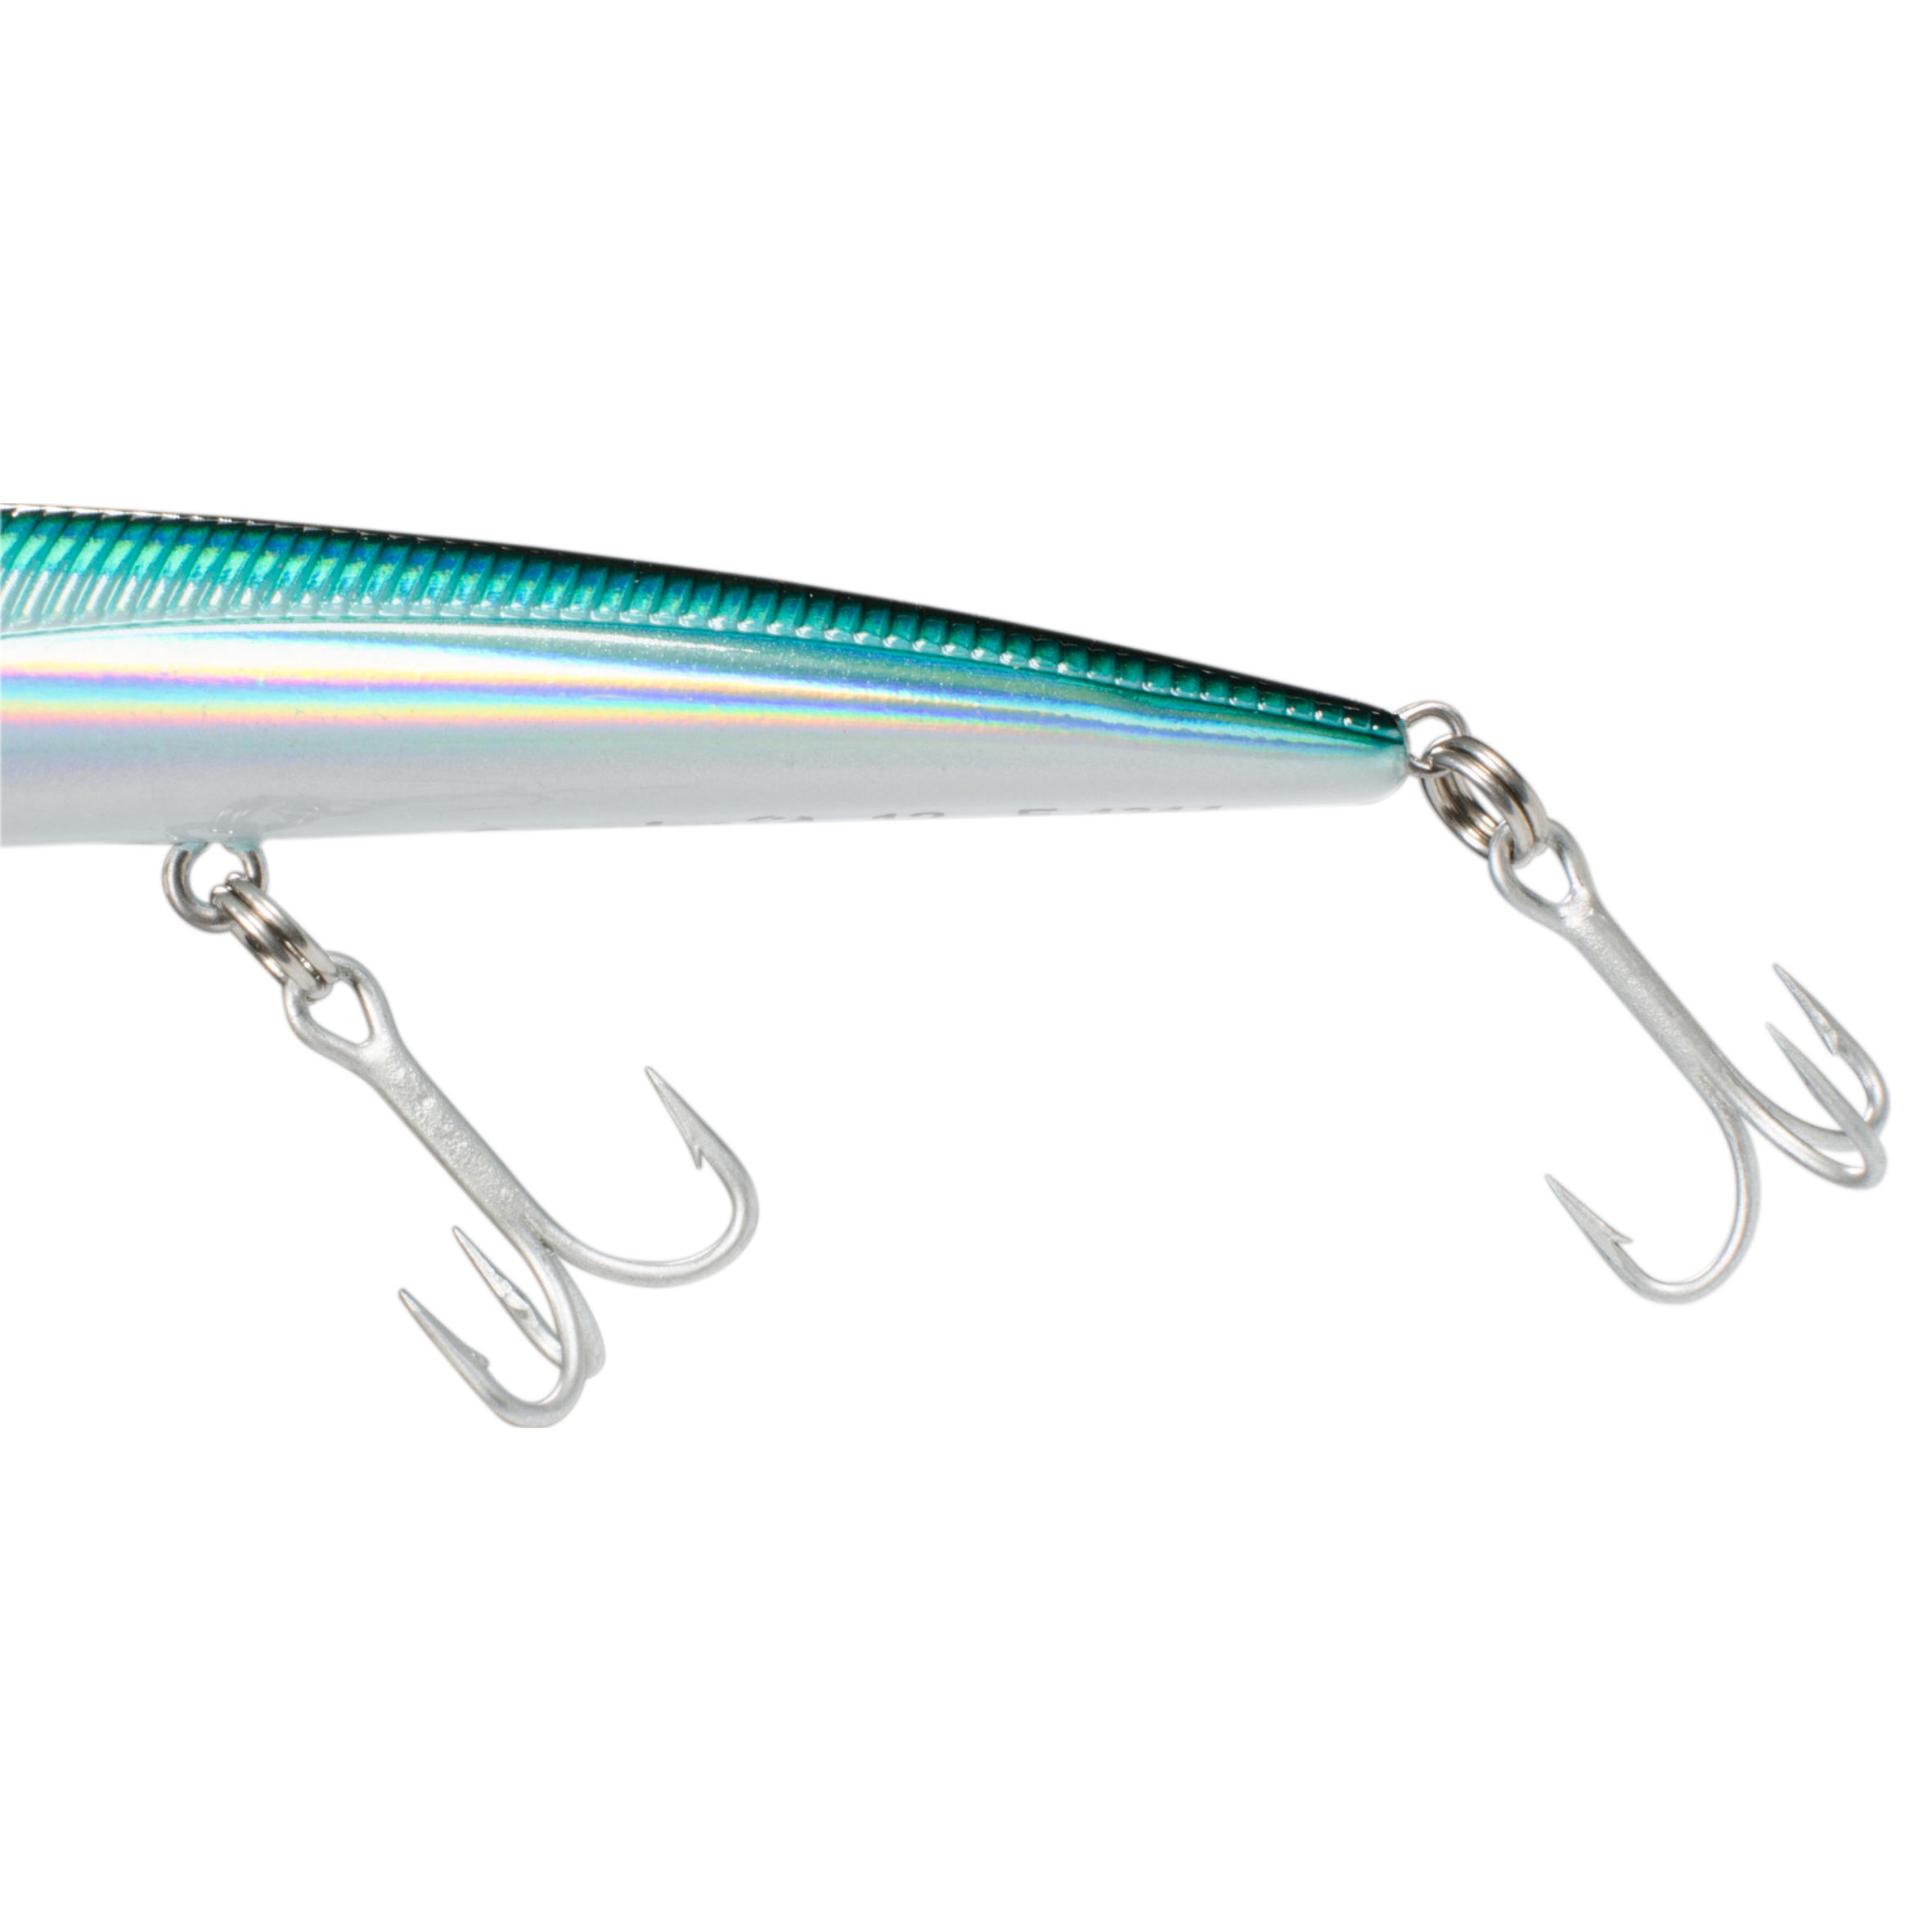 Saxton slim 125 holo blue floating sea fishing plug bait